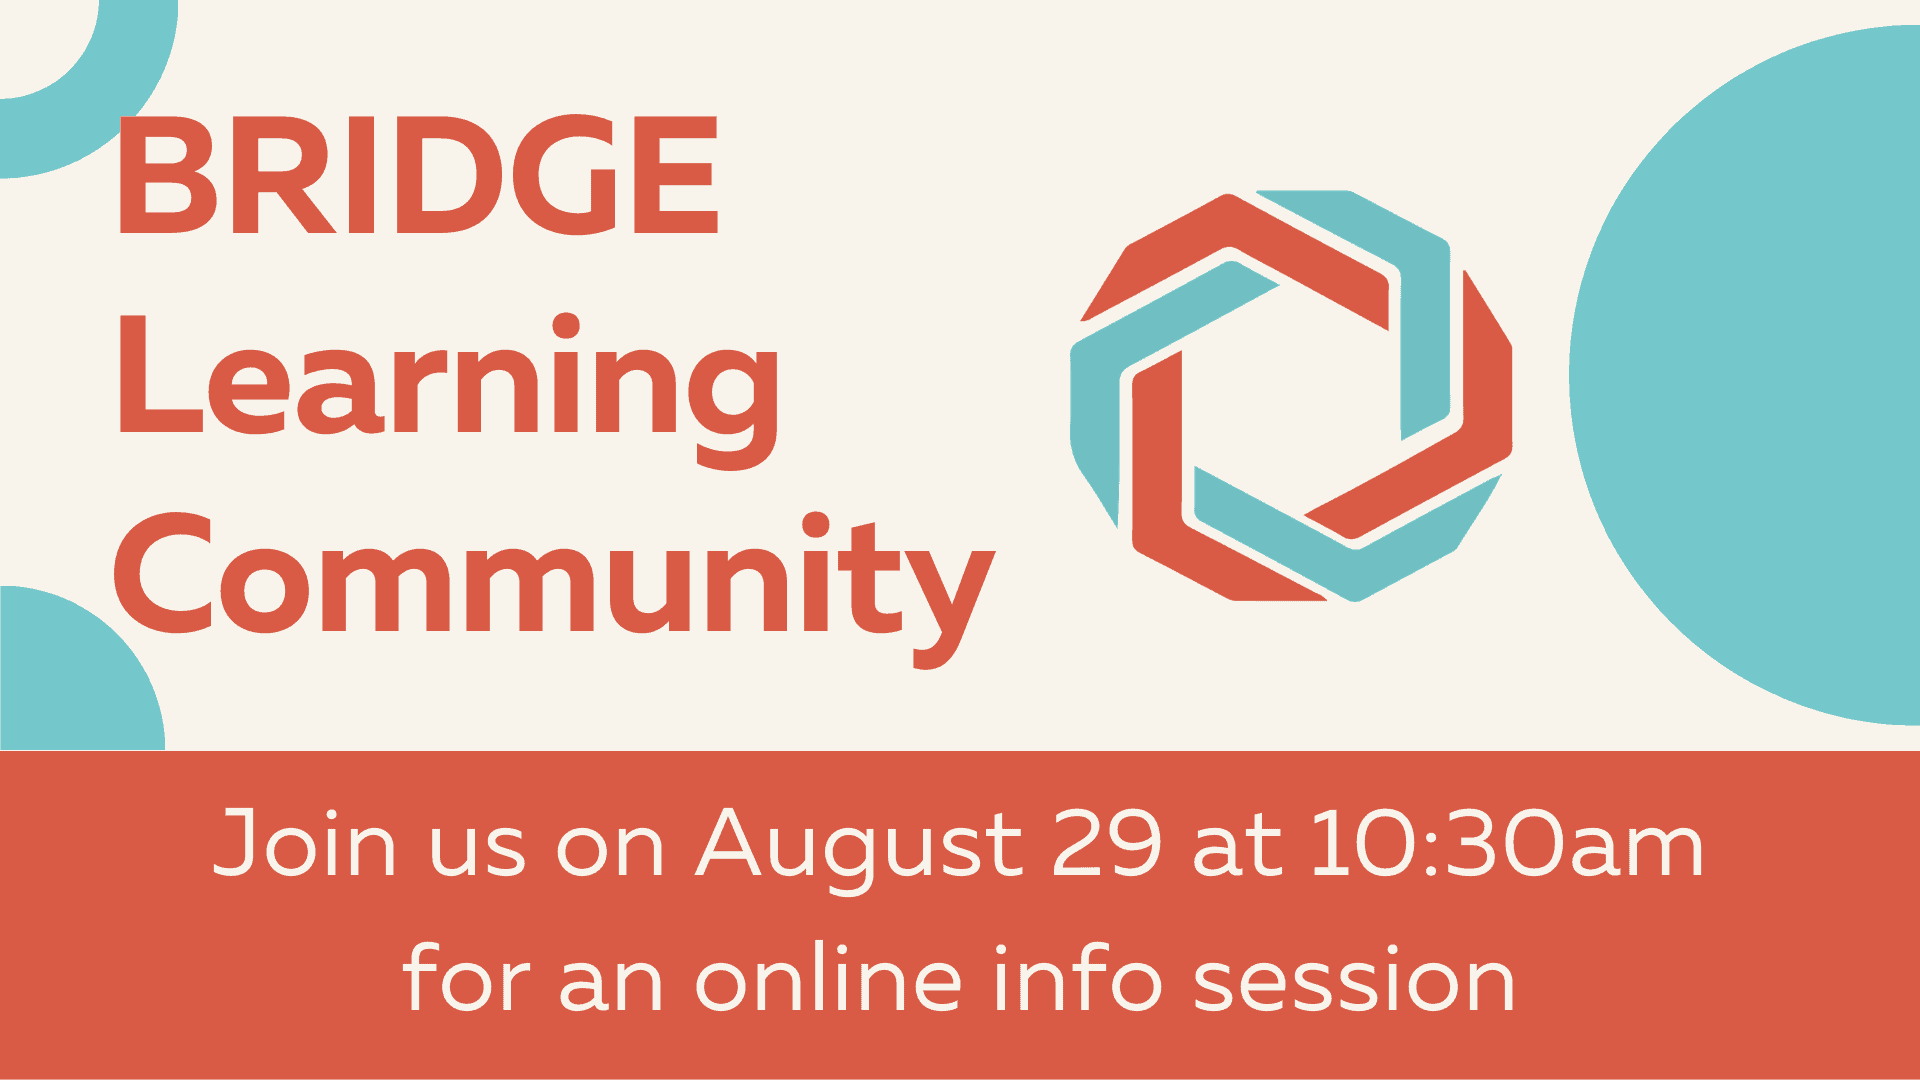 BRIDGE Learning Community Information Session - BRIDGE is a new online program designed for Maryland students in grades 7-10. We aim to provide an engaging and authentic educational experience to students seeking stability and growth during the COVID-19 crisis. More information about BRIDGE can also be found on our website: https://www.bridge-edu.org/